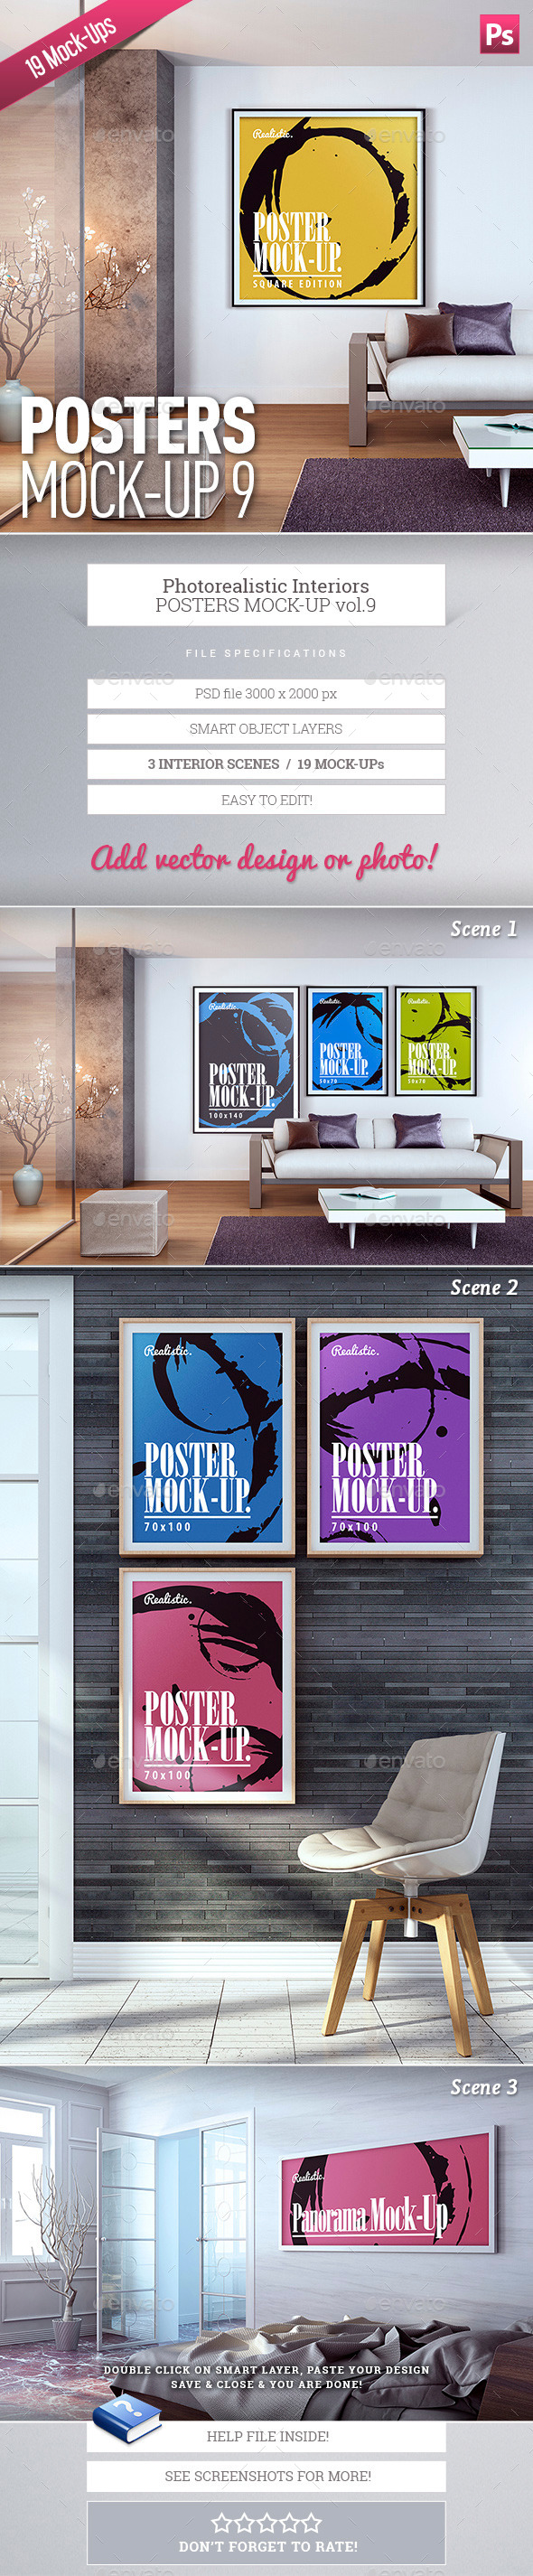 Posters Mock-Up Vol.9 - Posters Print